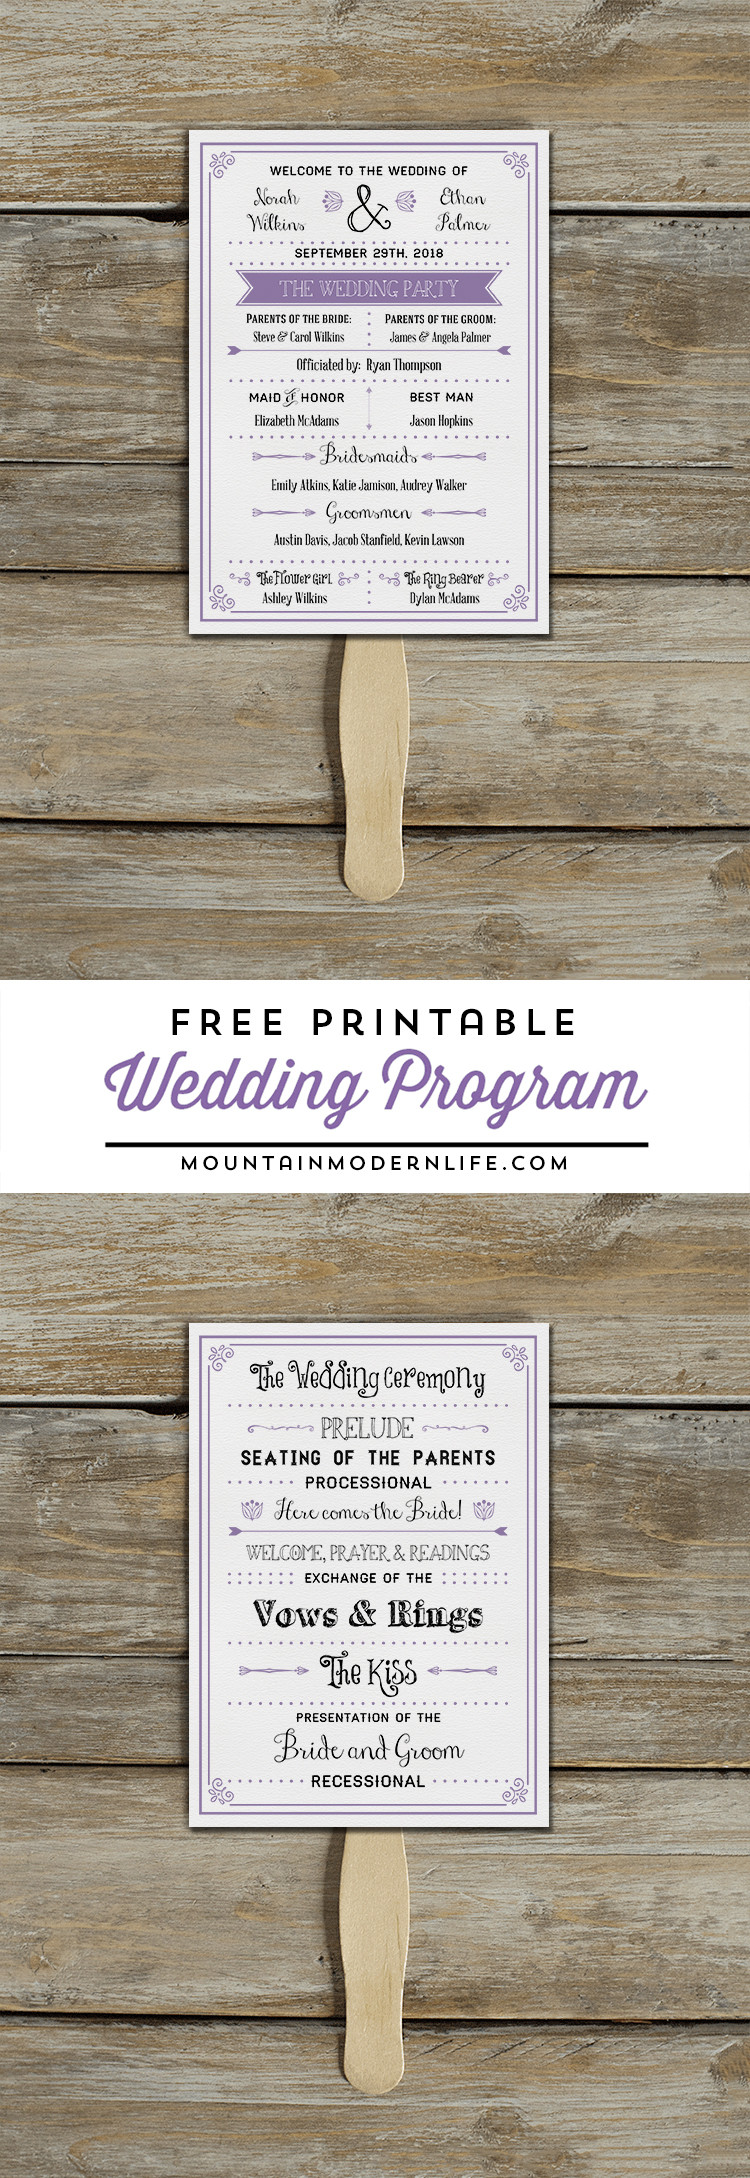 Best ideas about DIY Wedding Programs Template . Save or Pin FREE Printable Wedding Program Now.